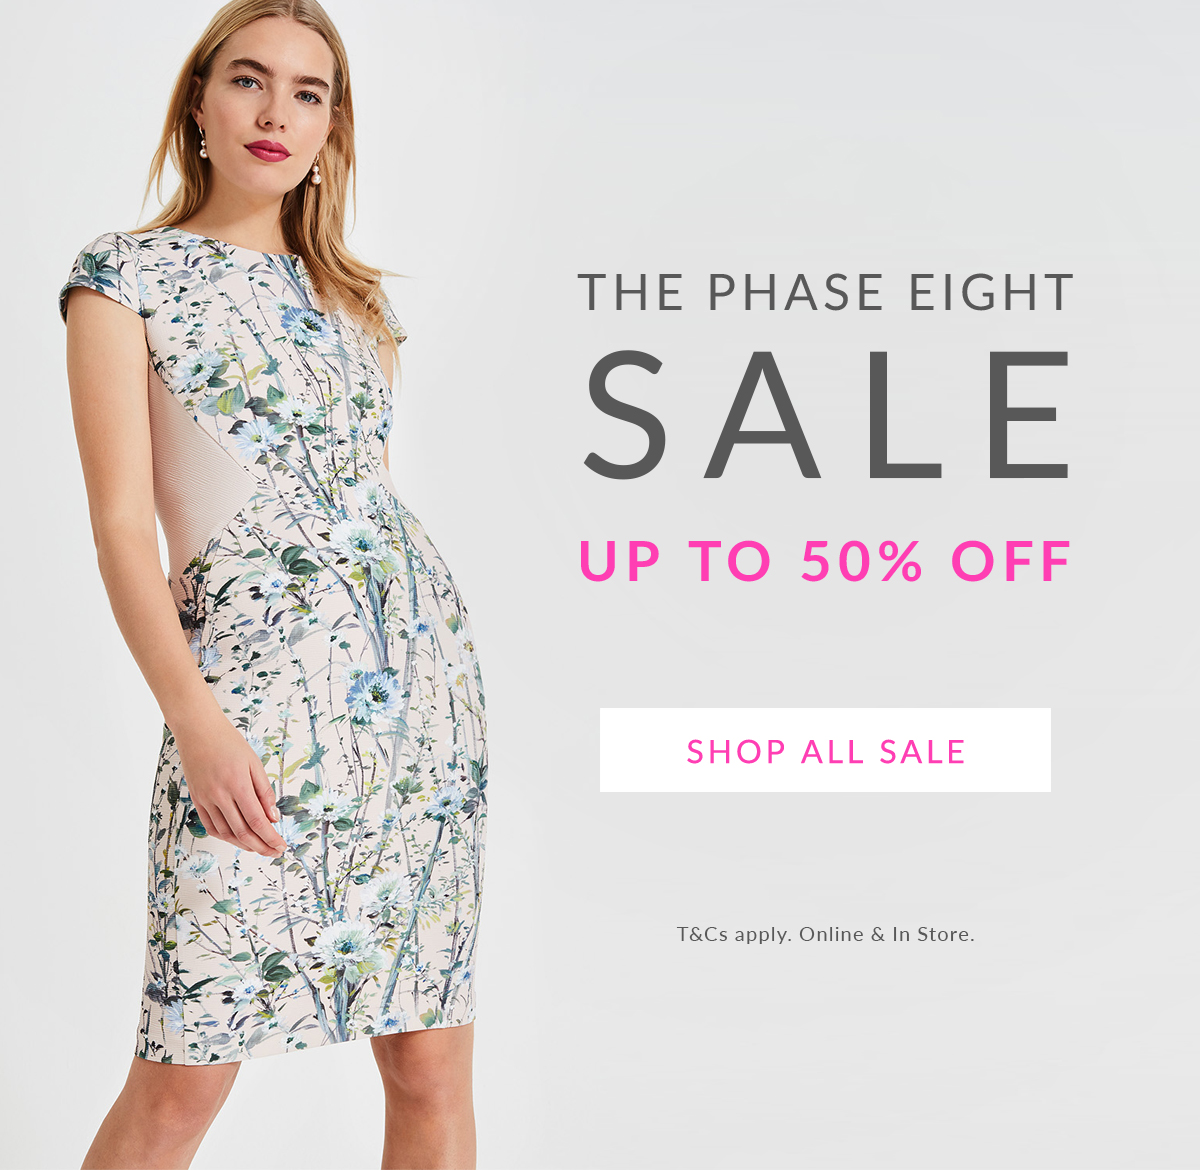 The Phase Eight Sale | Up to 50% off | Shop All Sale